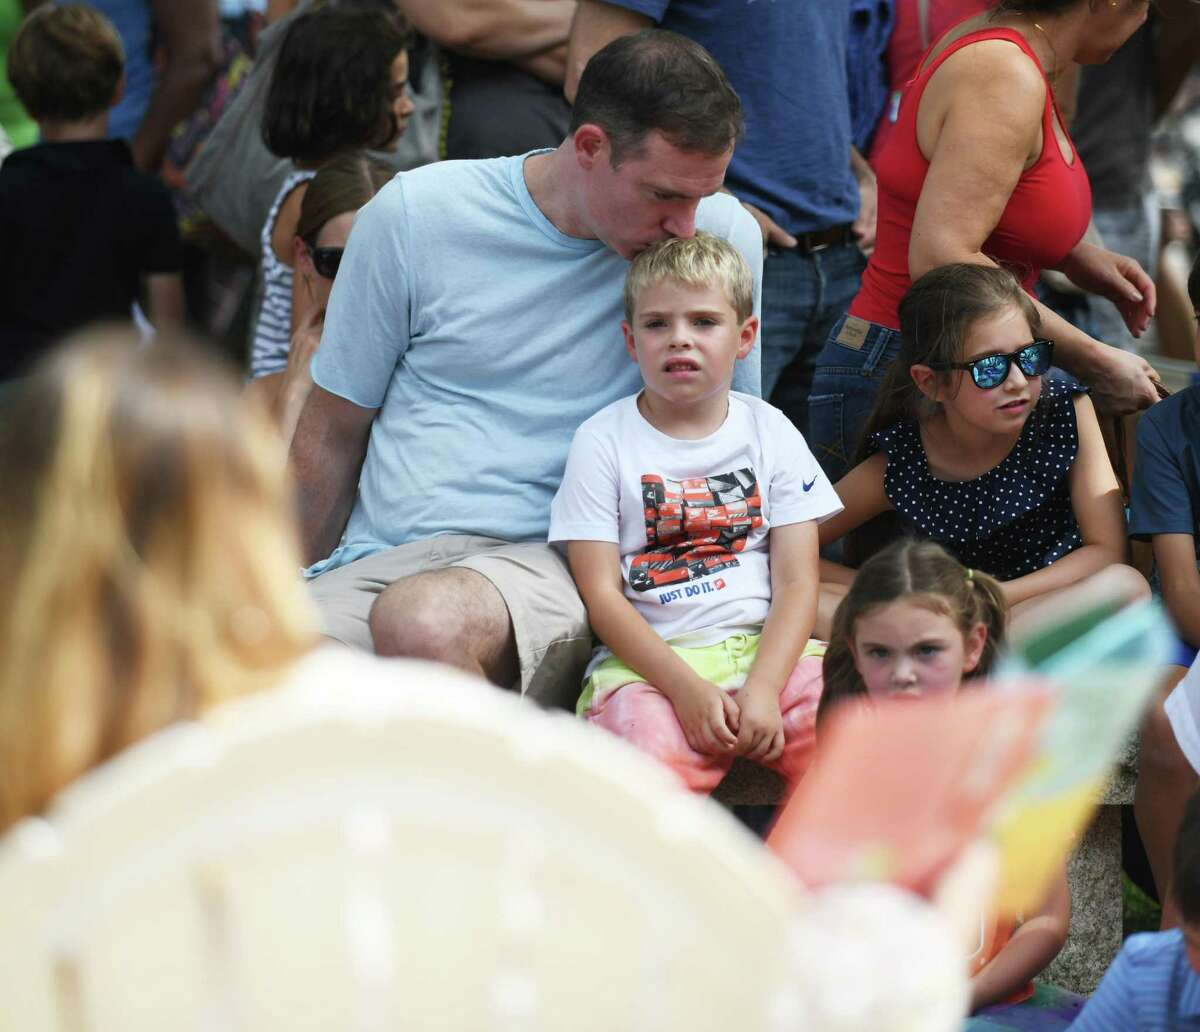 Peter Devine and his kindergartener, Julian, listen during Back to School Story Hour at Old Greenwich School in Old Greenwich, Conn. Tuesday, Aug. 31, 2021. Students and parents enjoyed storytime and an ice cream picnic and outdoors before the start of the 2021-2022 school year.